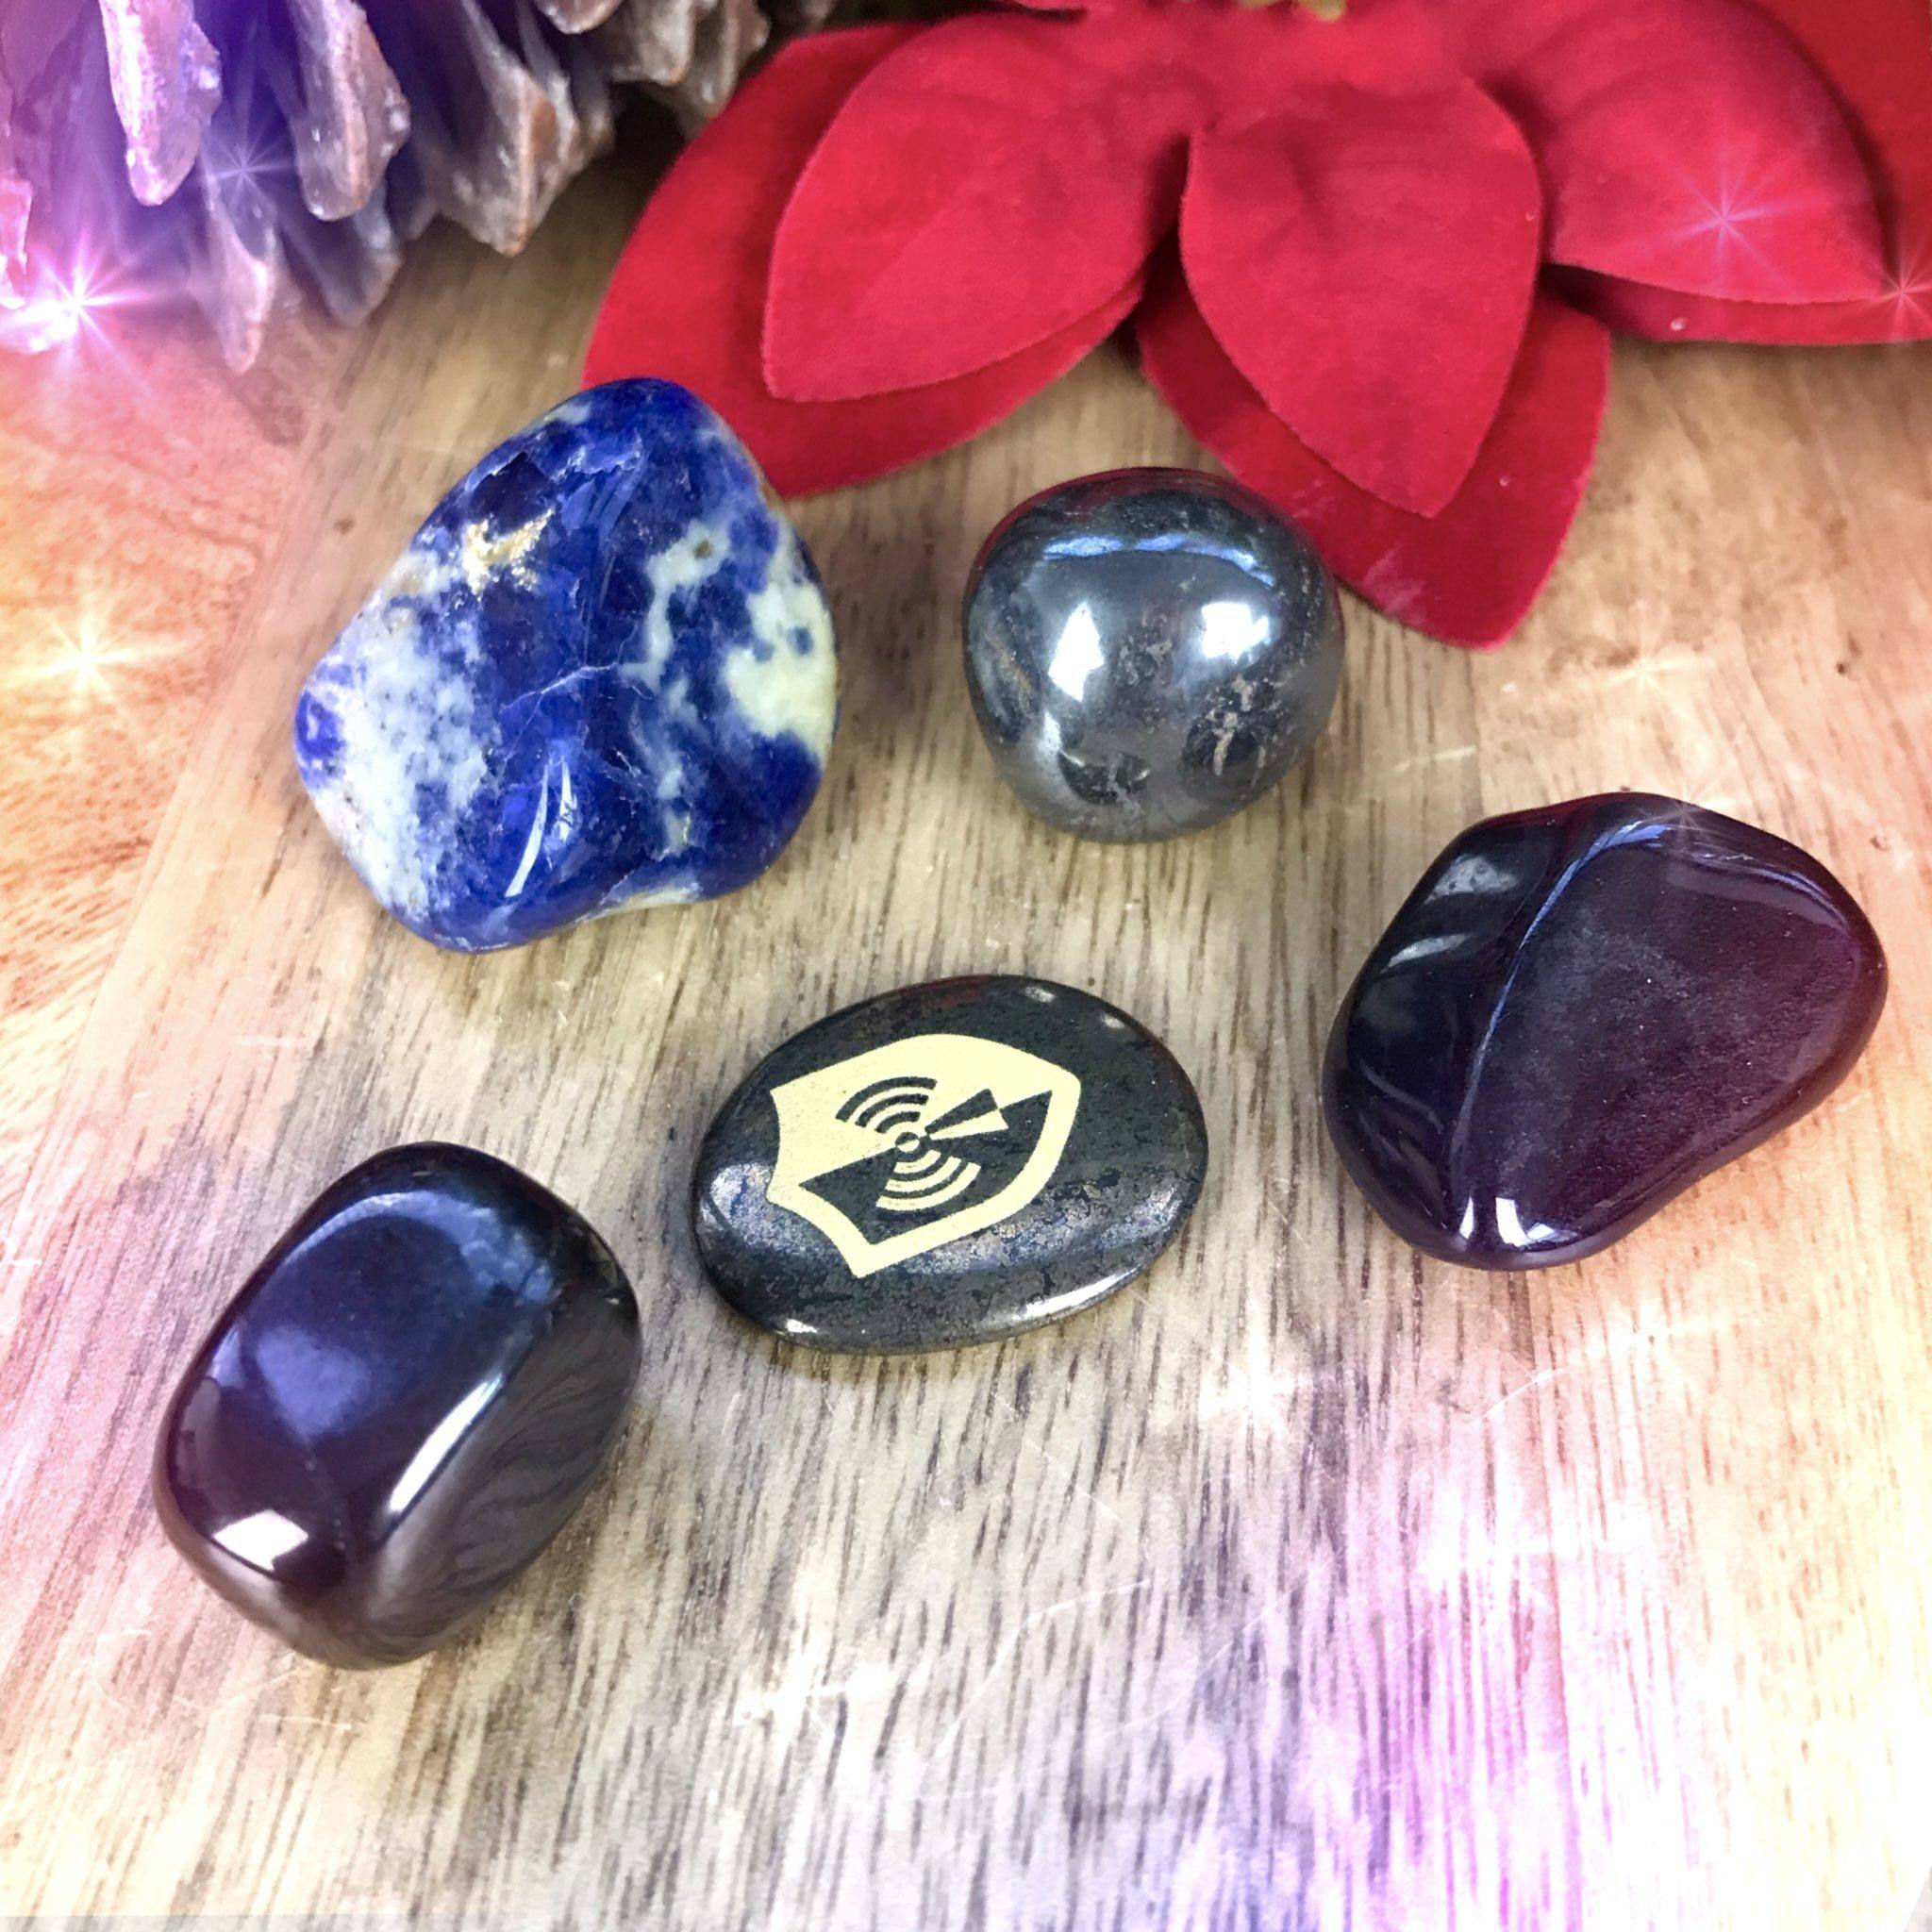 EMF Protection Stone Set to shield you from electromagnetic smog